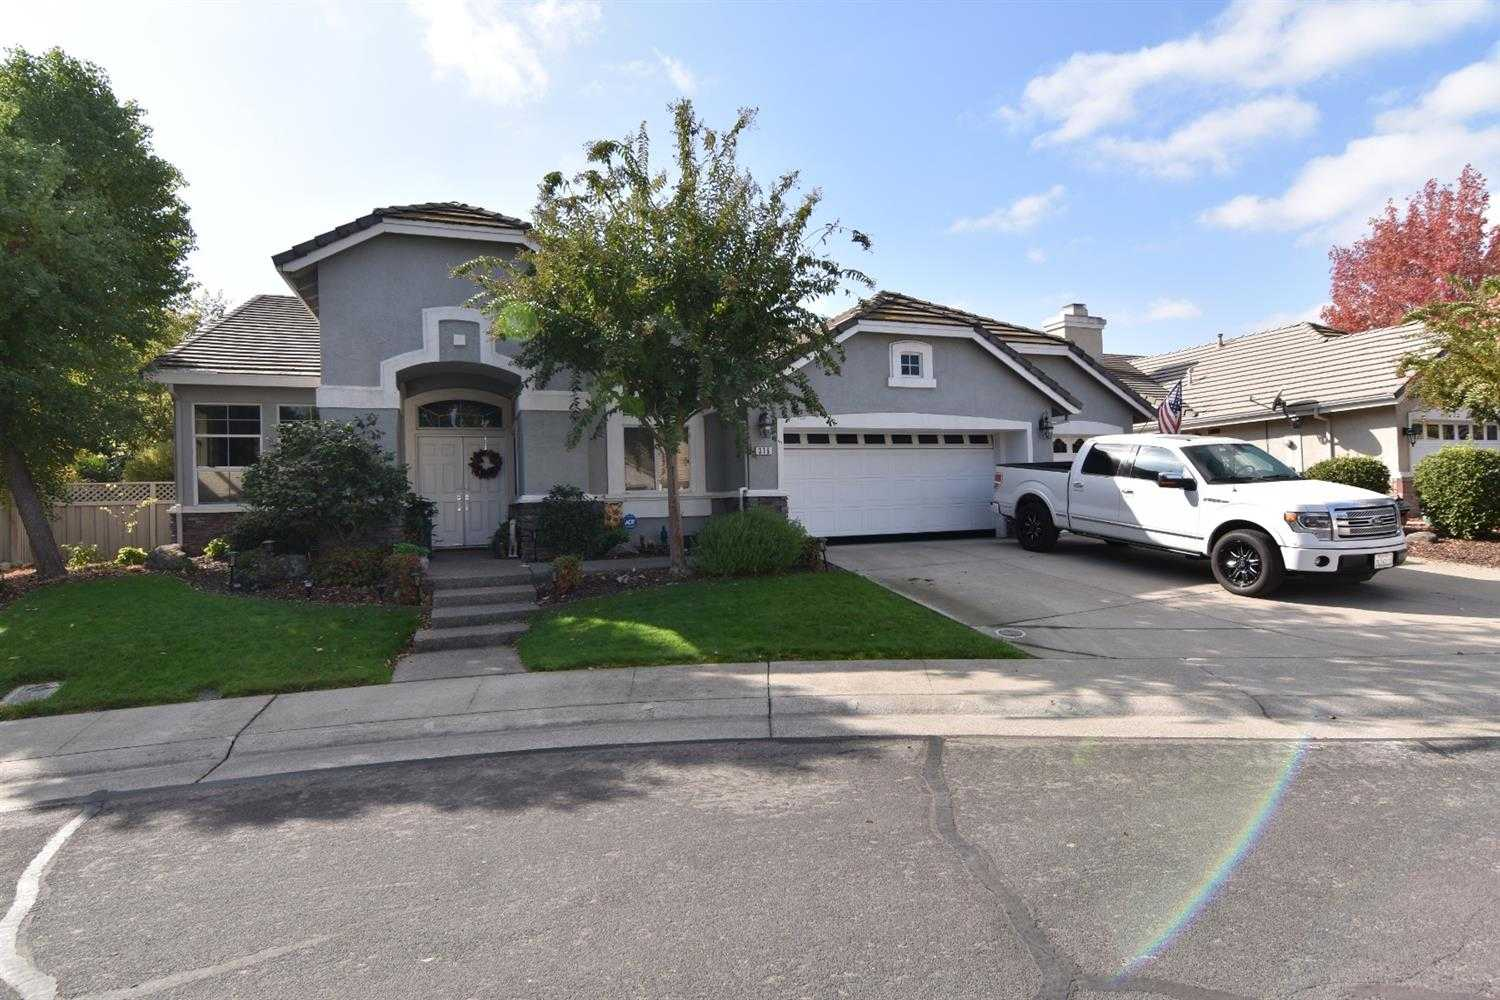 $659,000 - 3Br/2Ba -  for Sale in Sun City Roseville, Roseville